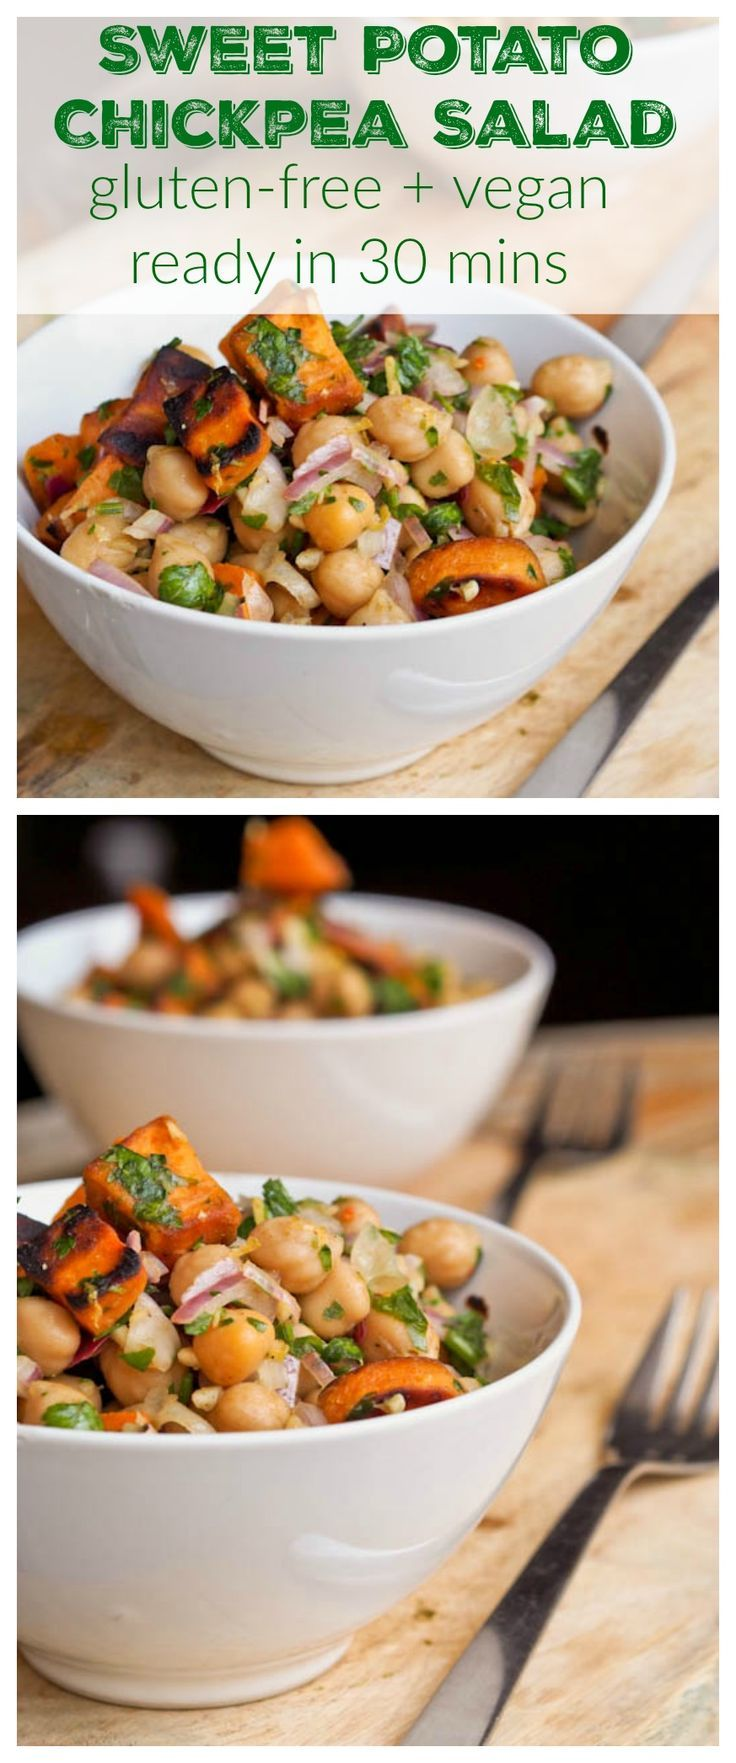 This vegan + gluten free sweet potato and chickpea salad recipe is ready in 30 mins and bursting with flavor from the parsley, lemons, red onions and medley of spices. Perfect for a healthy weeknight meal in line with those clean eating New Year's Resolutions